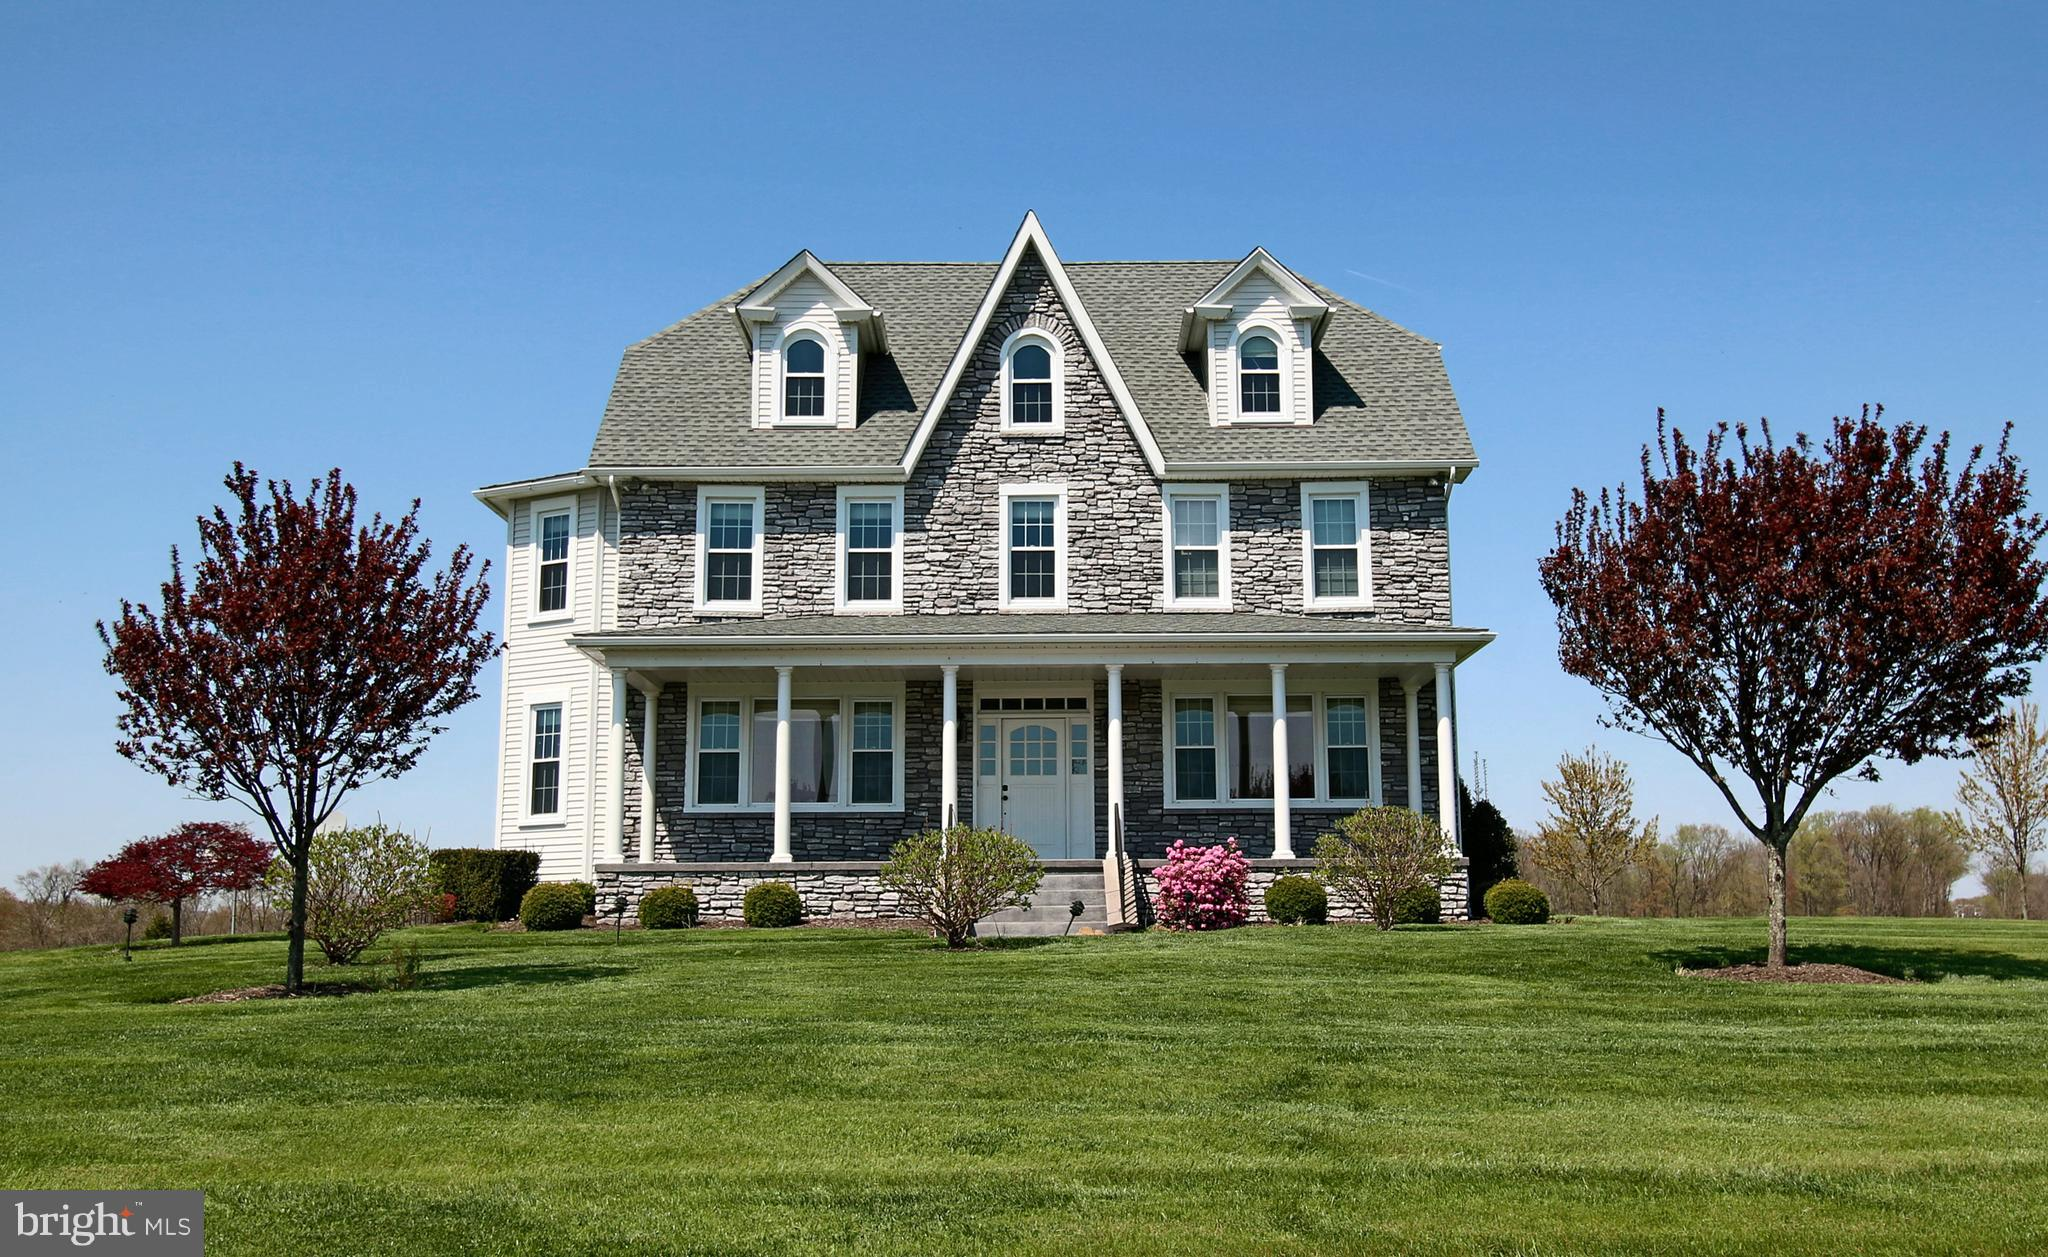 100 ACRE FARM, 3 STORY VICTORIAN FARM HOUSE, TOTALLY RENOVATED TOP TO BOTTOM IN 2010, 5 BEDROOMS, 3